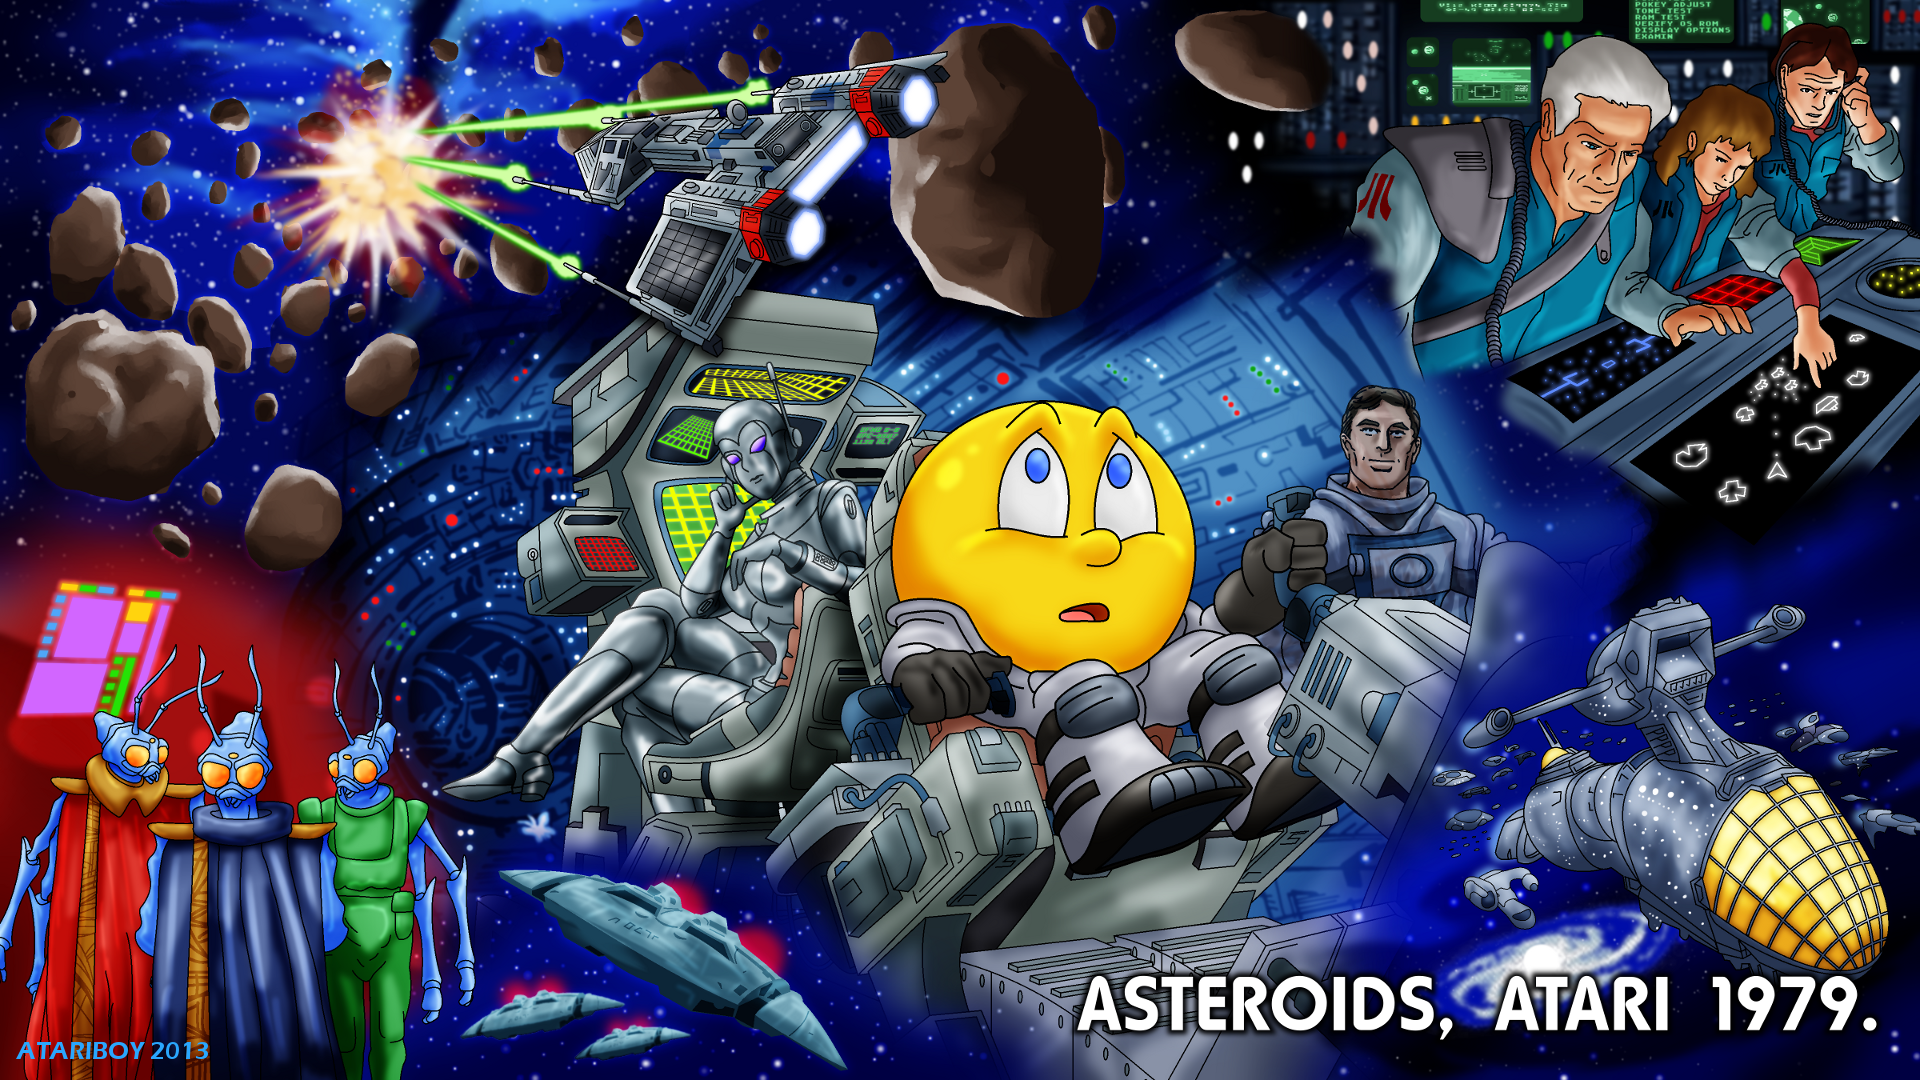 Pacman Fanfic - Asteroids 1979. by Atariboy2600